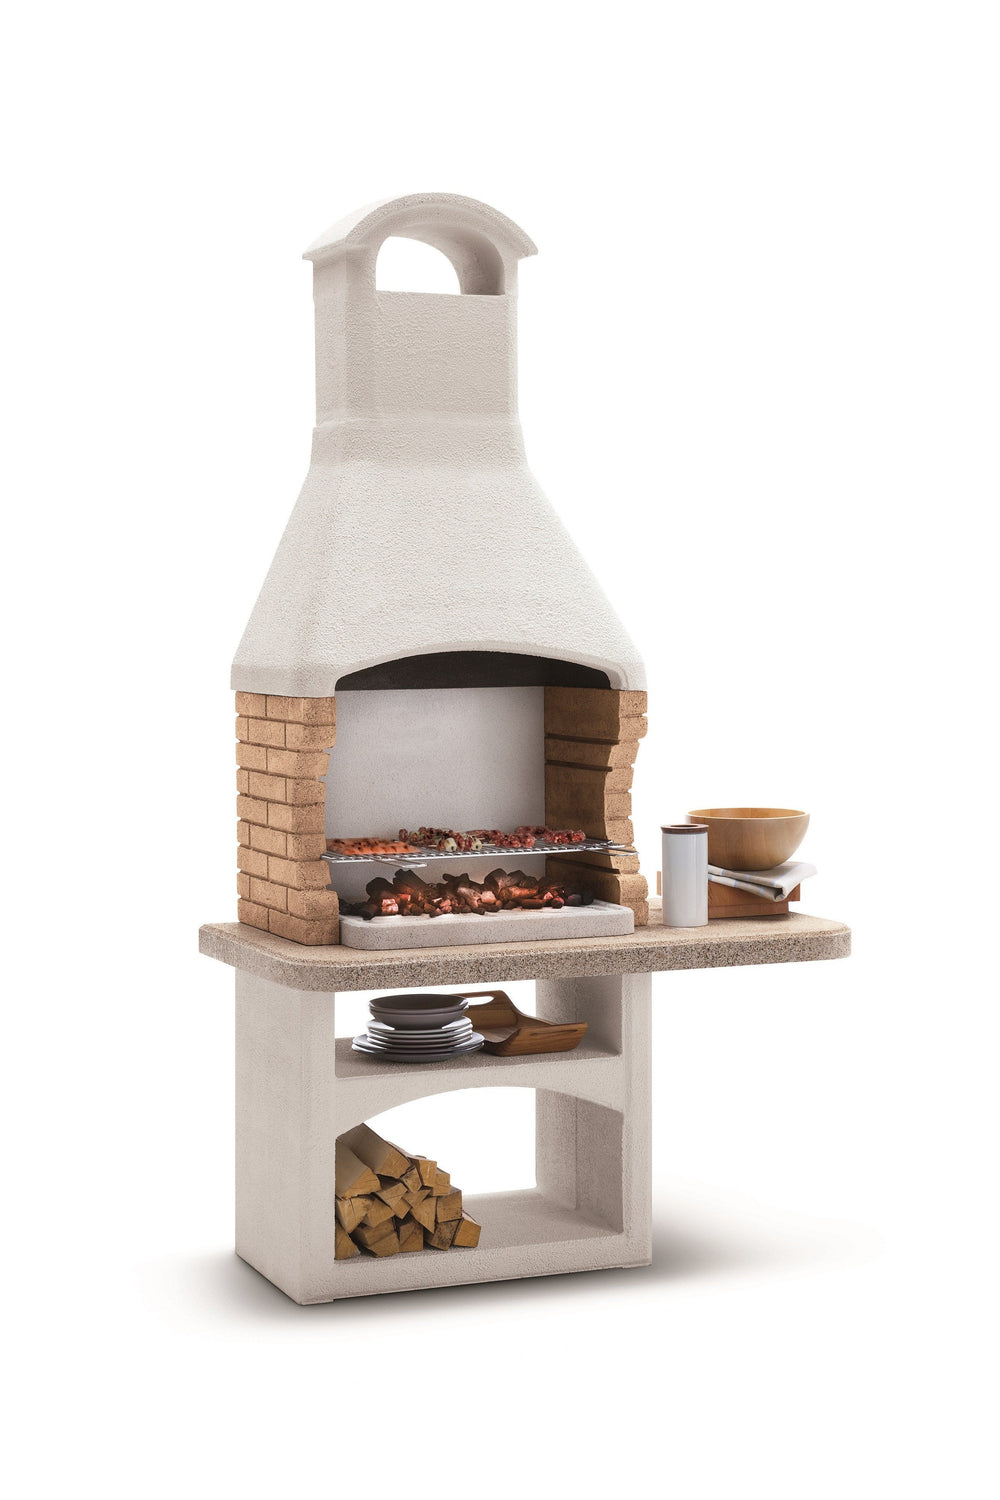 Palazzetti BOAVISTA Barbecue Outdoor Cooking Grill By Paini Pizza Ovens Paini